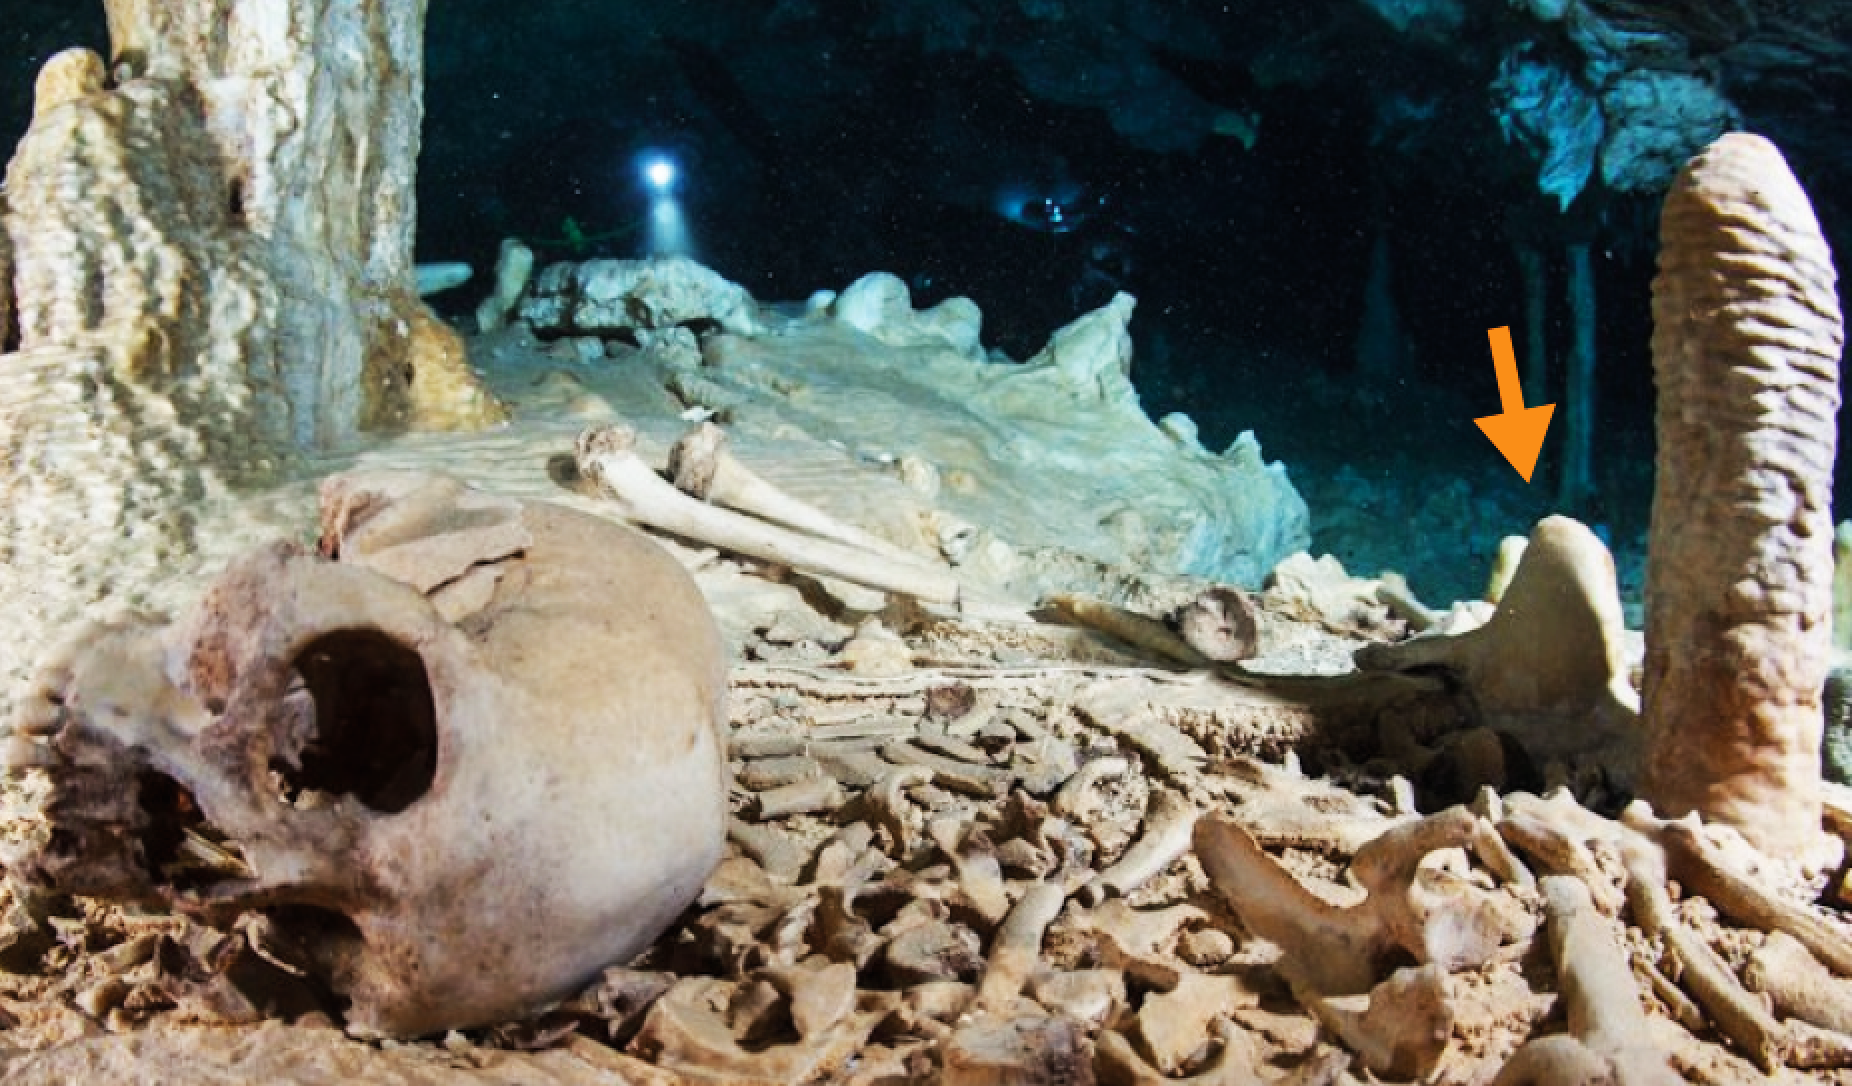 Carbon dating human fossils discovered